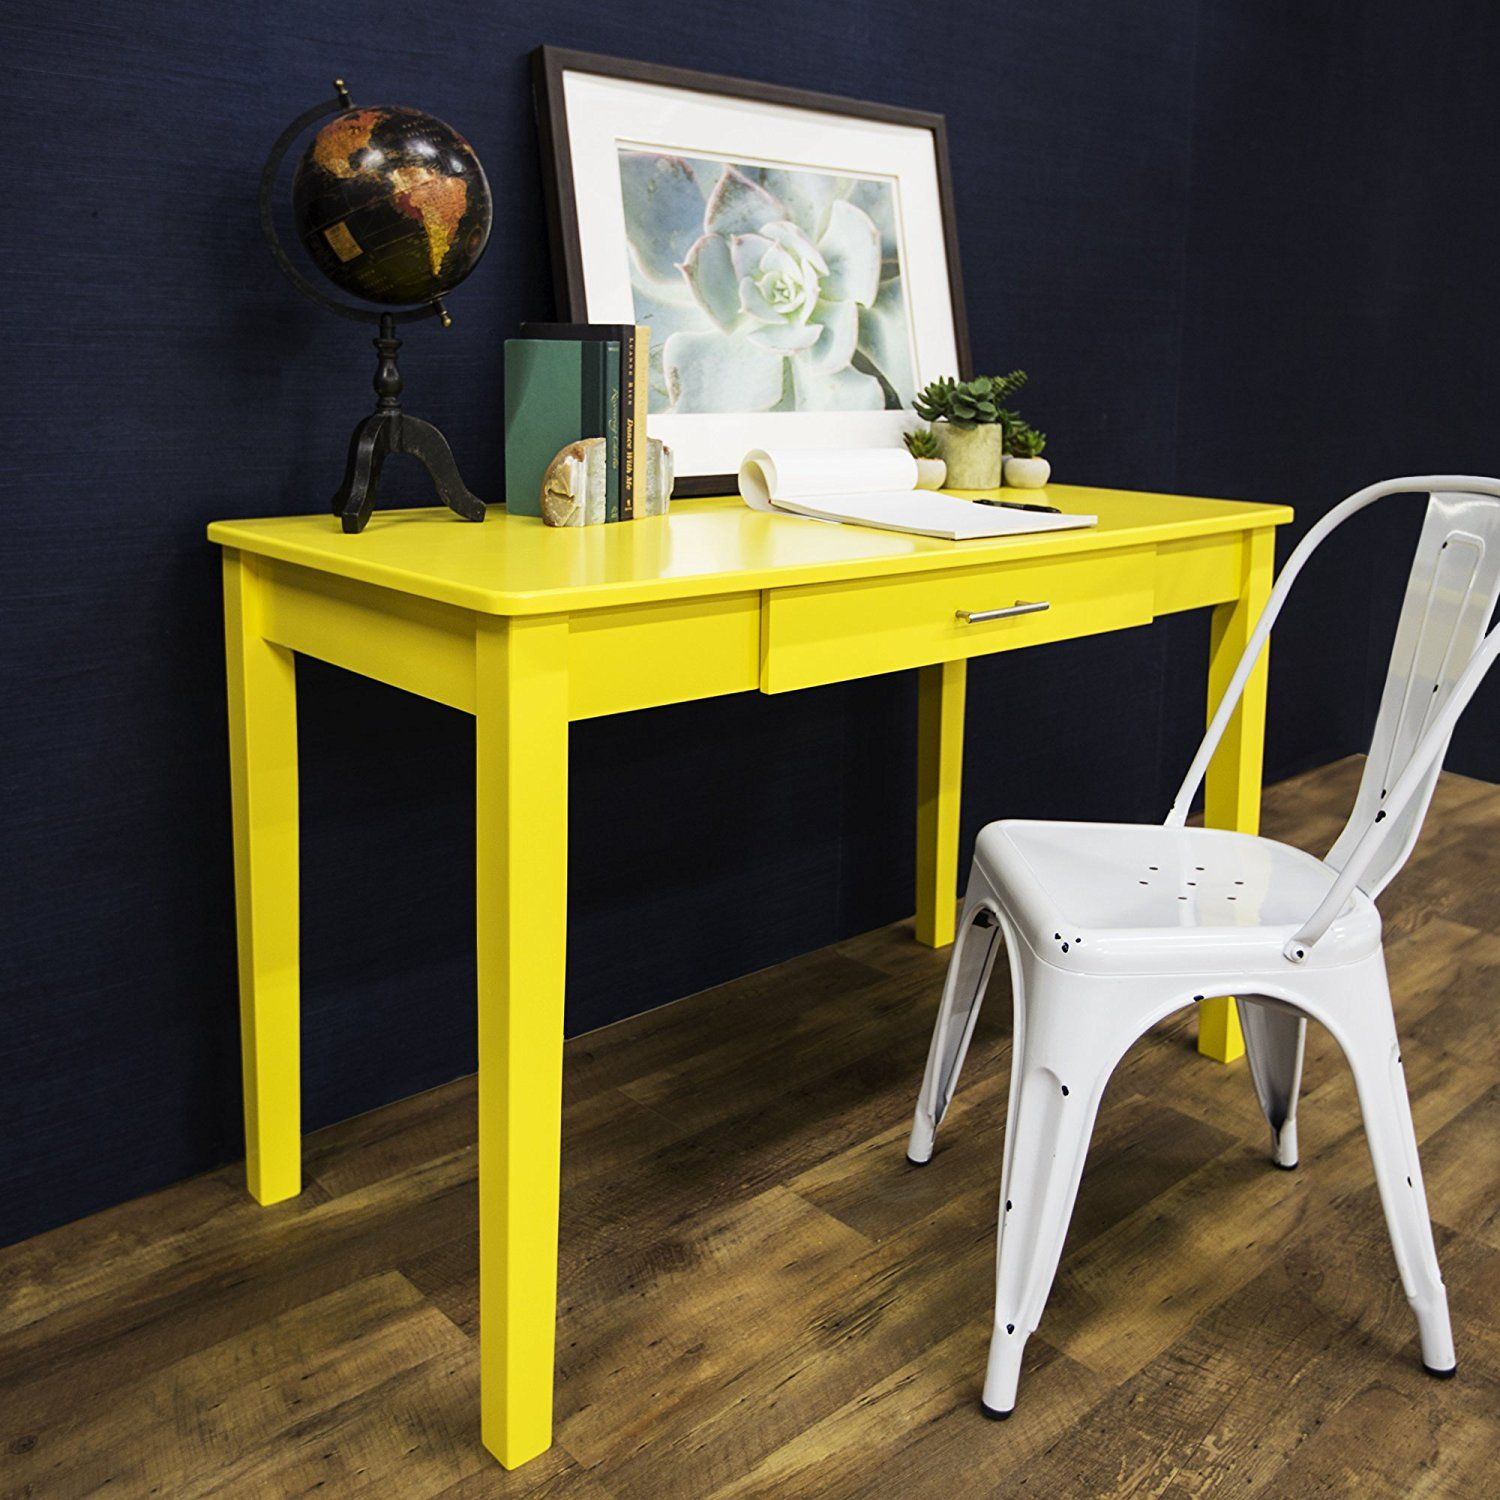 Little big life use yellow in your small home office it brings